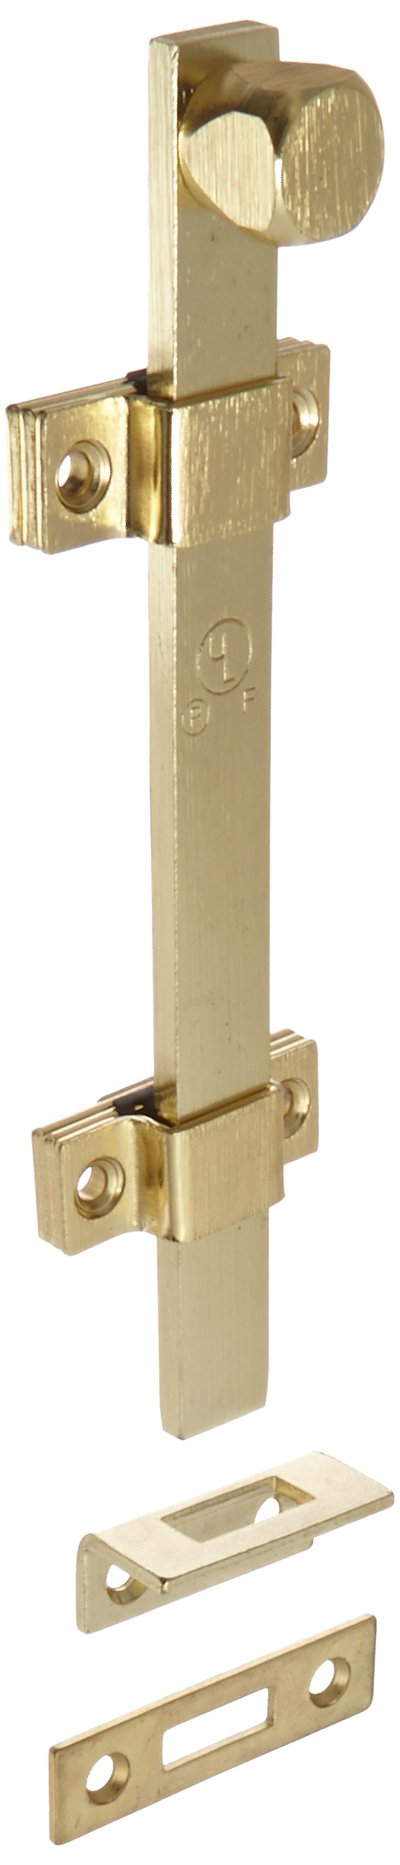 Rockwood 580-8.3 Surface Bolt, UL Listed, 8'' Length, Brass Polished Clear Coated Finish